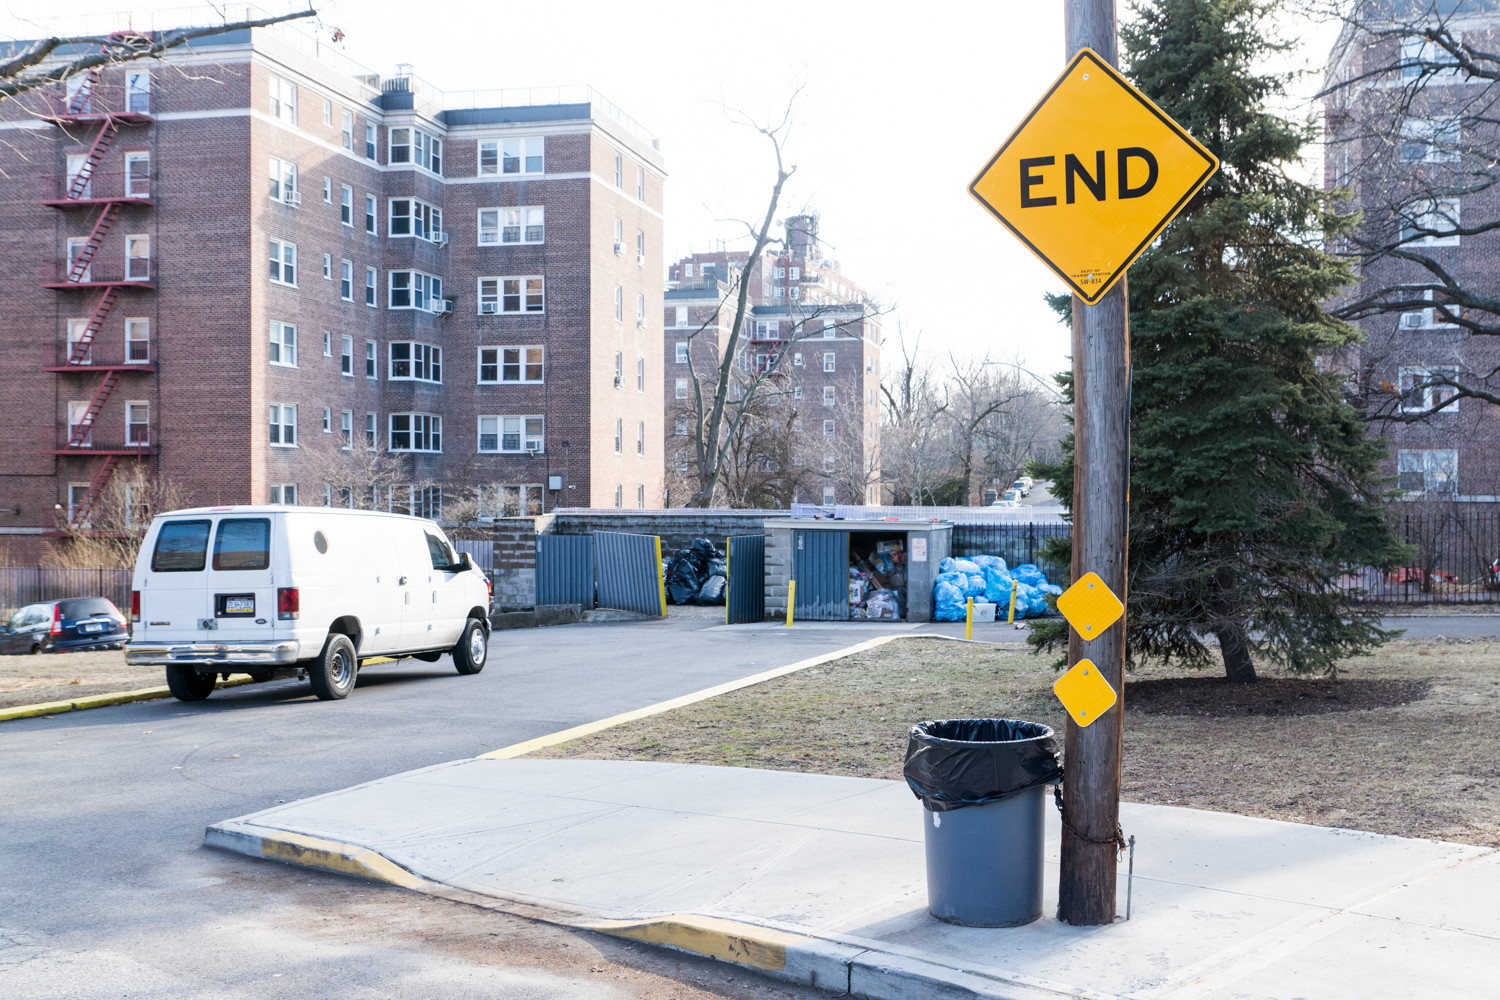 A sign warns pedestrians and motorists of a dead end on Netherland Avenue between West 256th and West 254th streets, where a row of dumpsters and a cinderblock wall blocks access. The North Riverdale Merchants and Business Association is one of the groups pushing to extend sidewalks, creating a connector path that could make it easier for pedestrians.